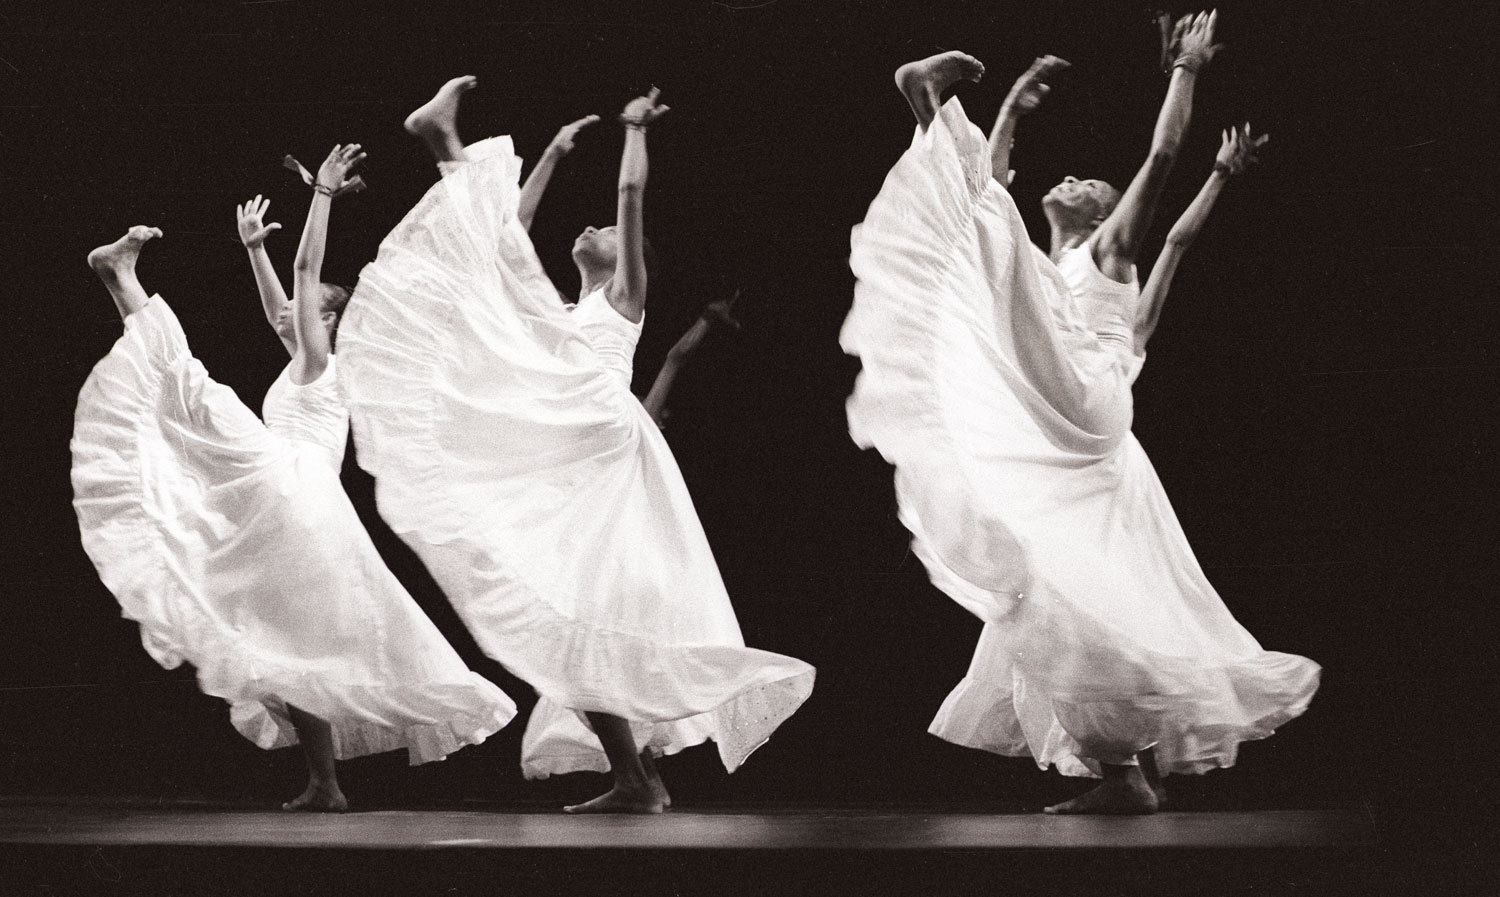 A scene from Revival (1981), choreographed by Douglas